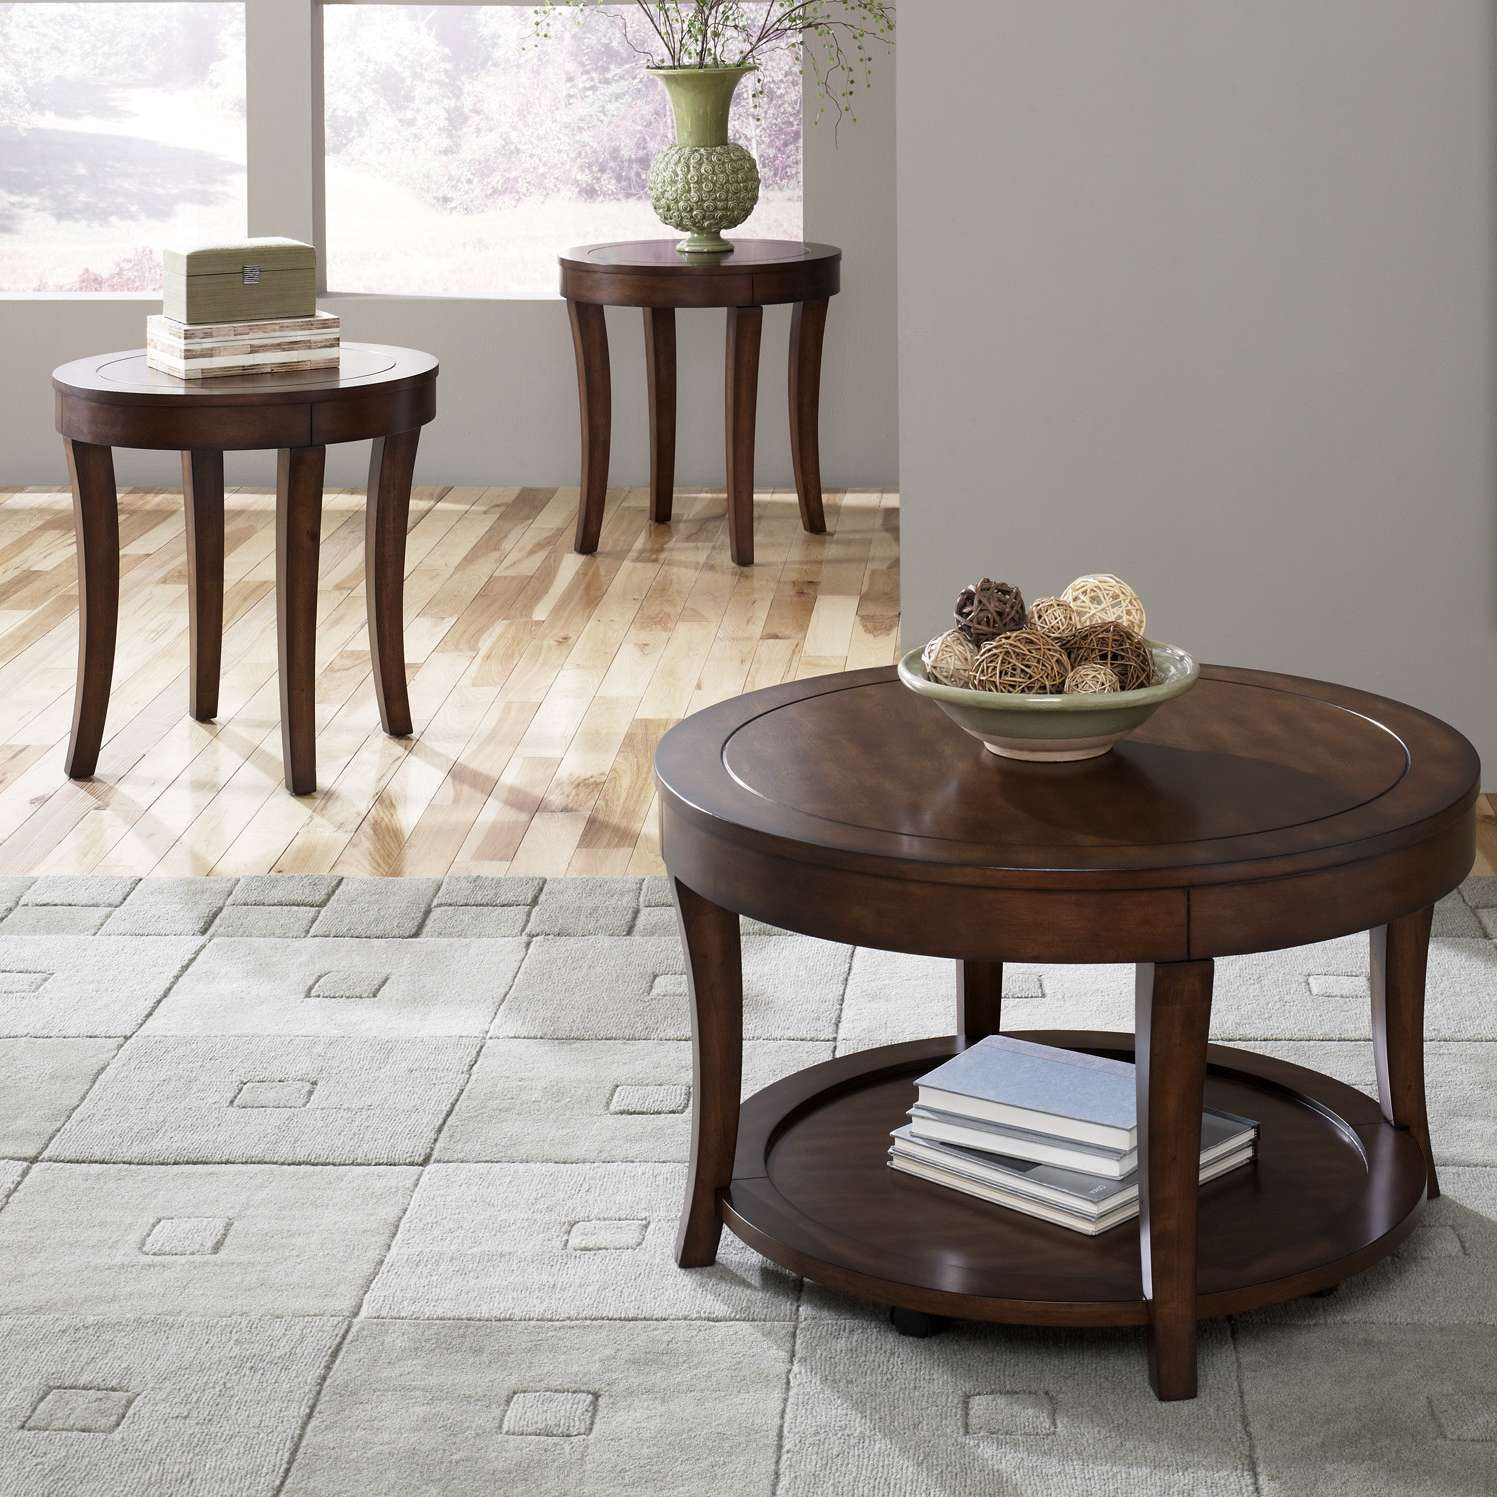 Coffee Tables : Viggo Round Glass Dining Table Reviews Wayfair Top With Regard To Widely Used Wayfair Glass Coffee Tables (View 12 of 20)